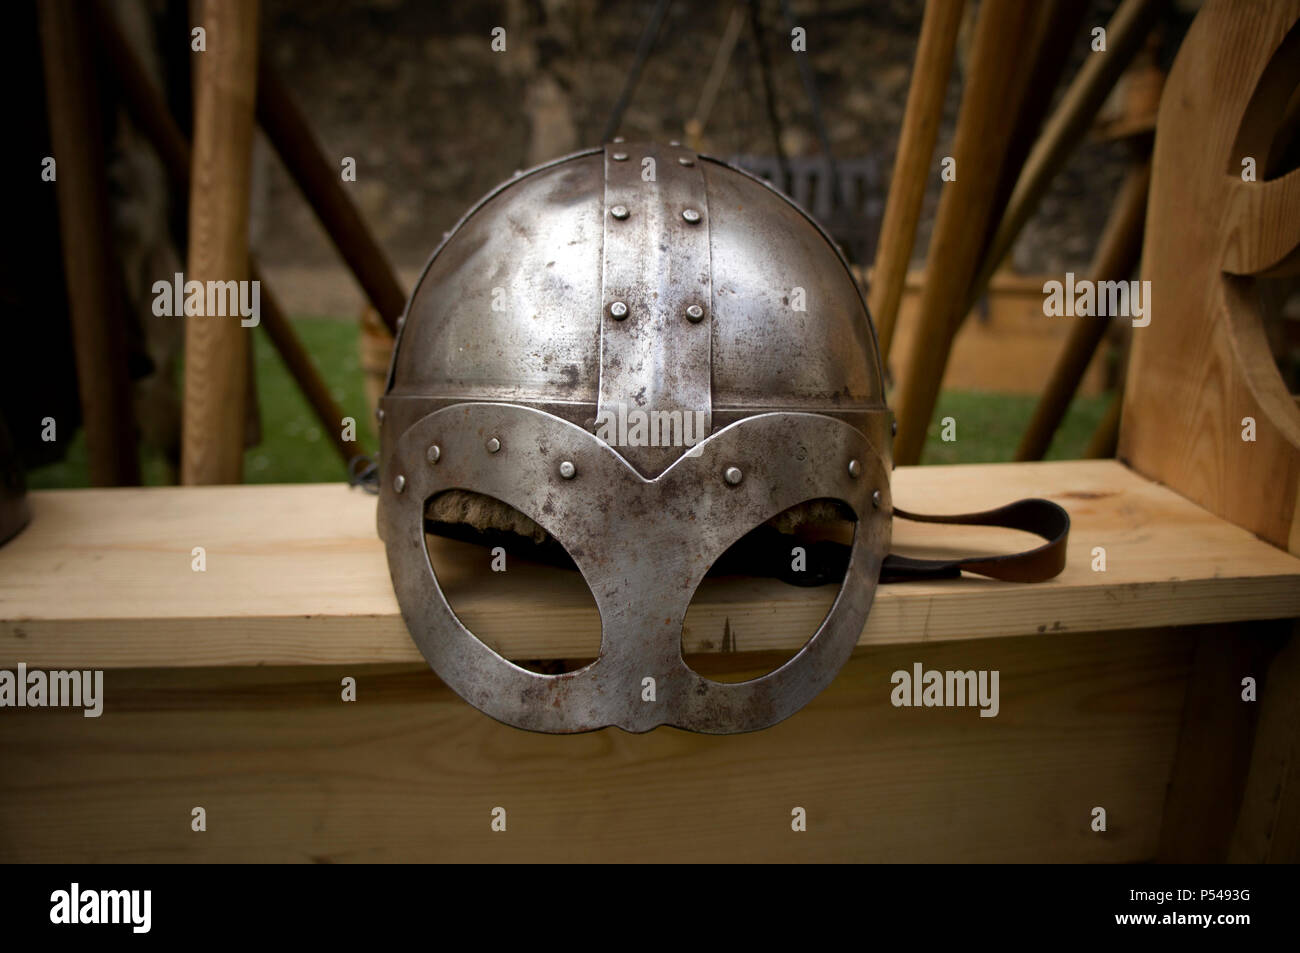 A viking spectacle helmet. - Stock Image